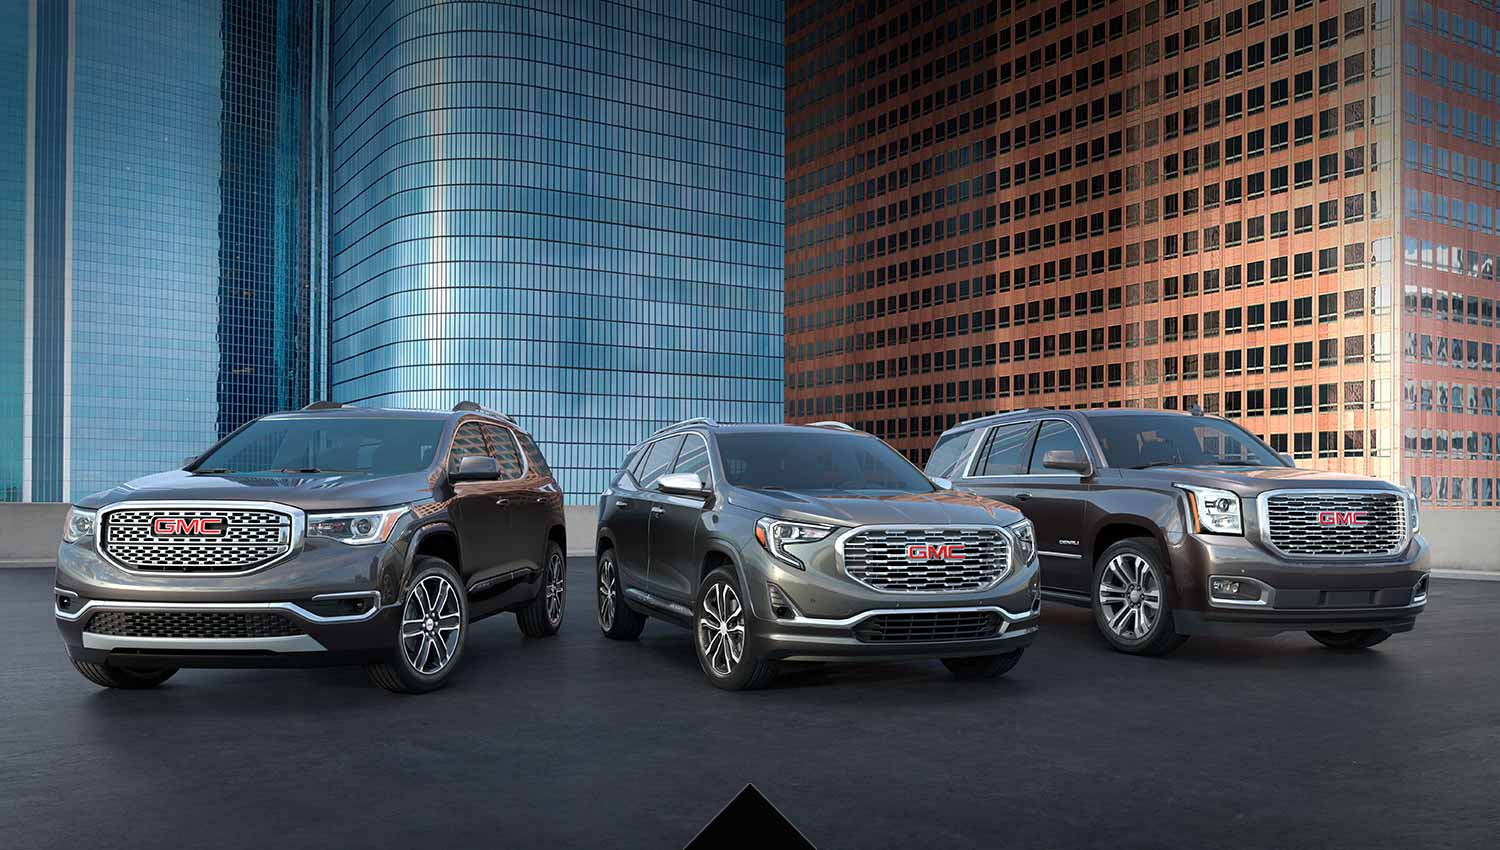 2019 gmc suv lineup large retail event banner [ 1268 x 719 Pixel ]